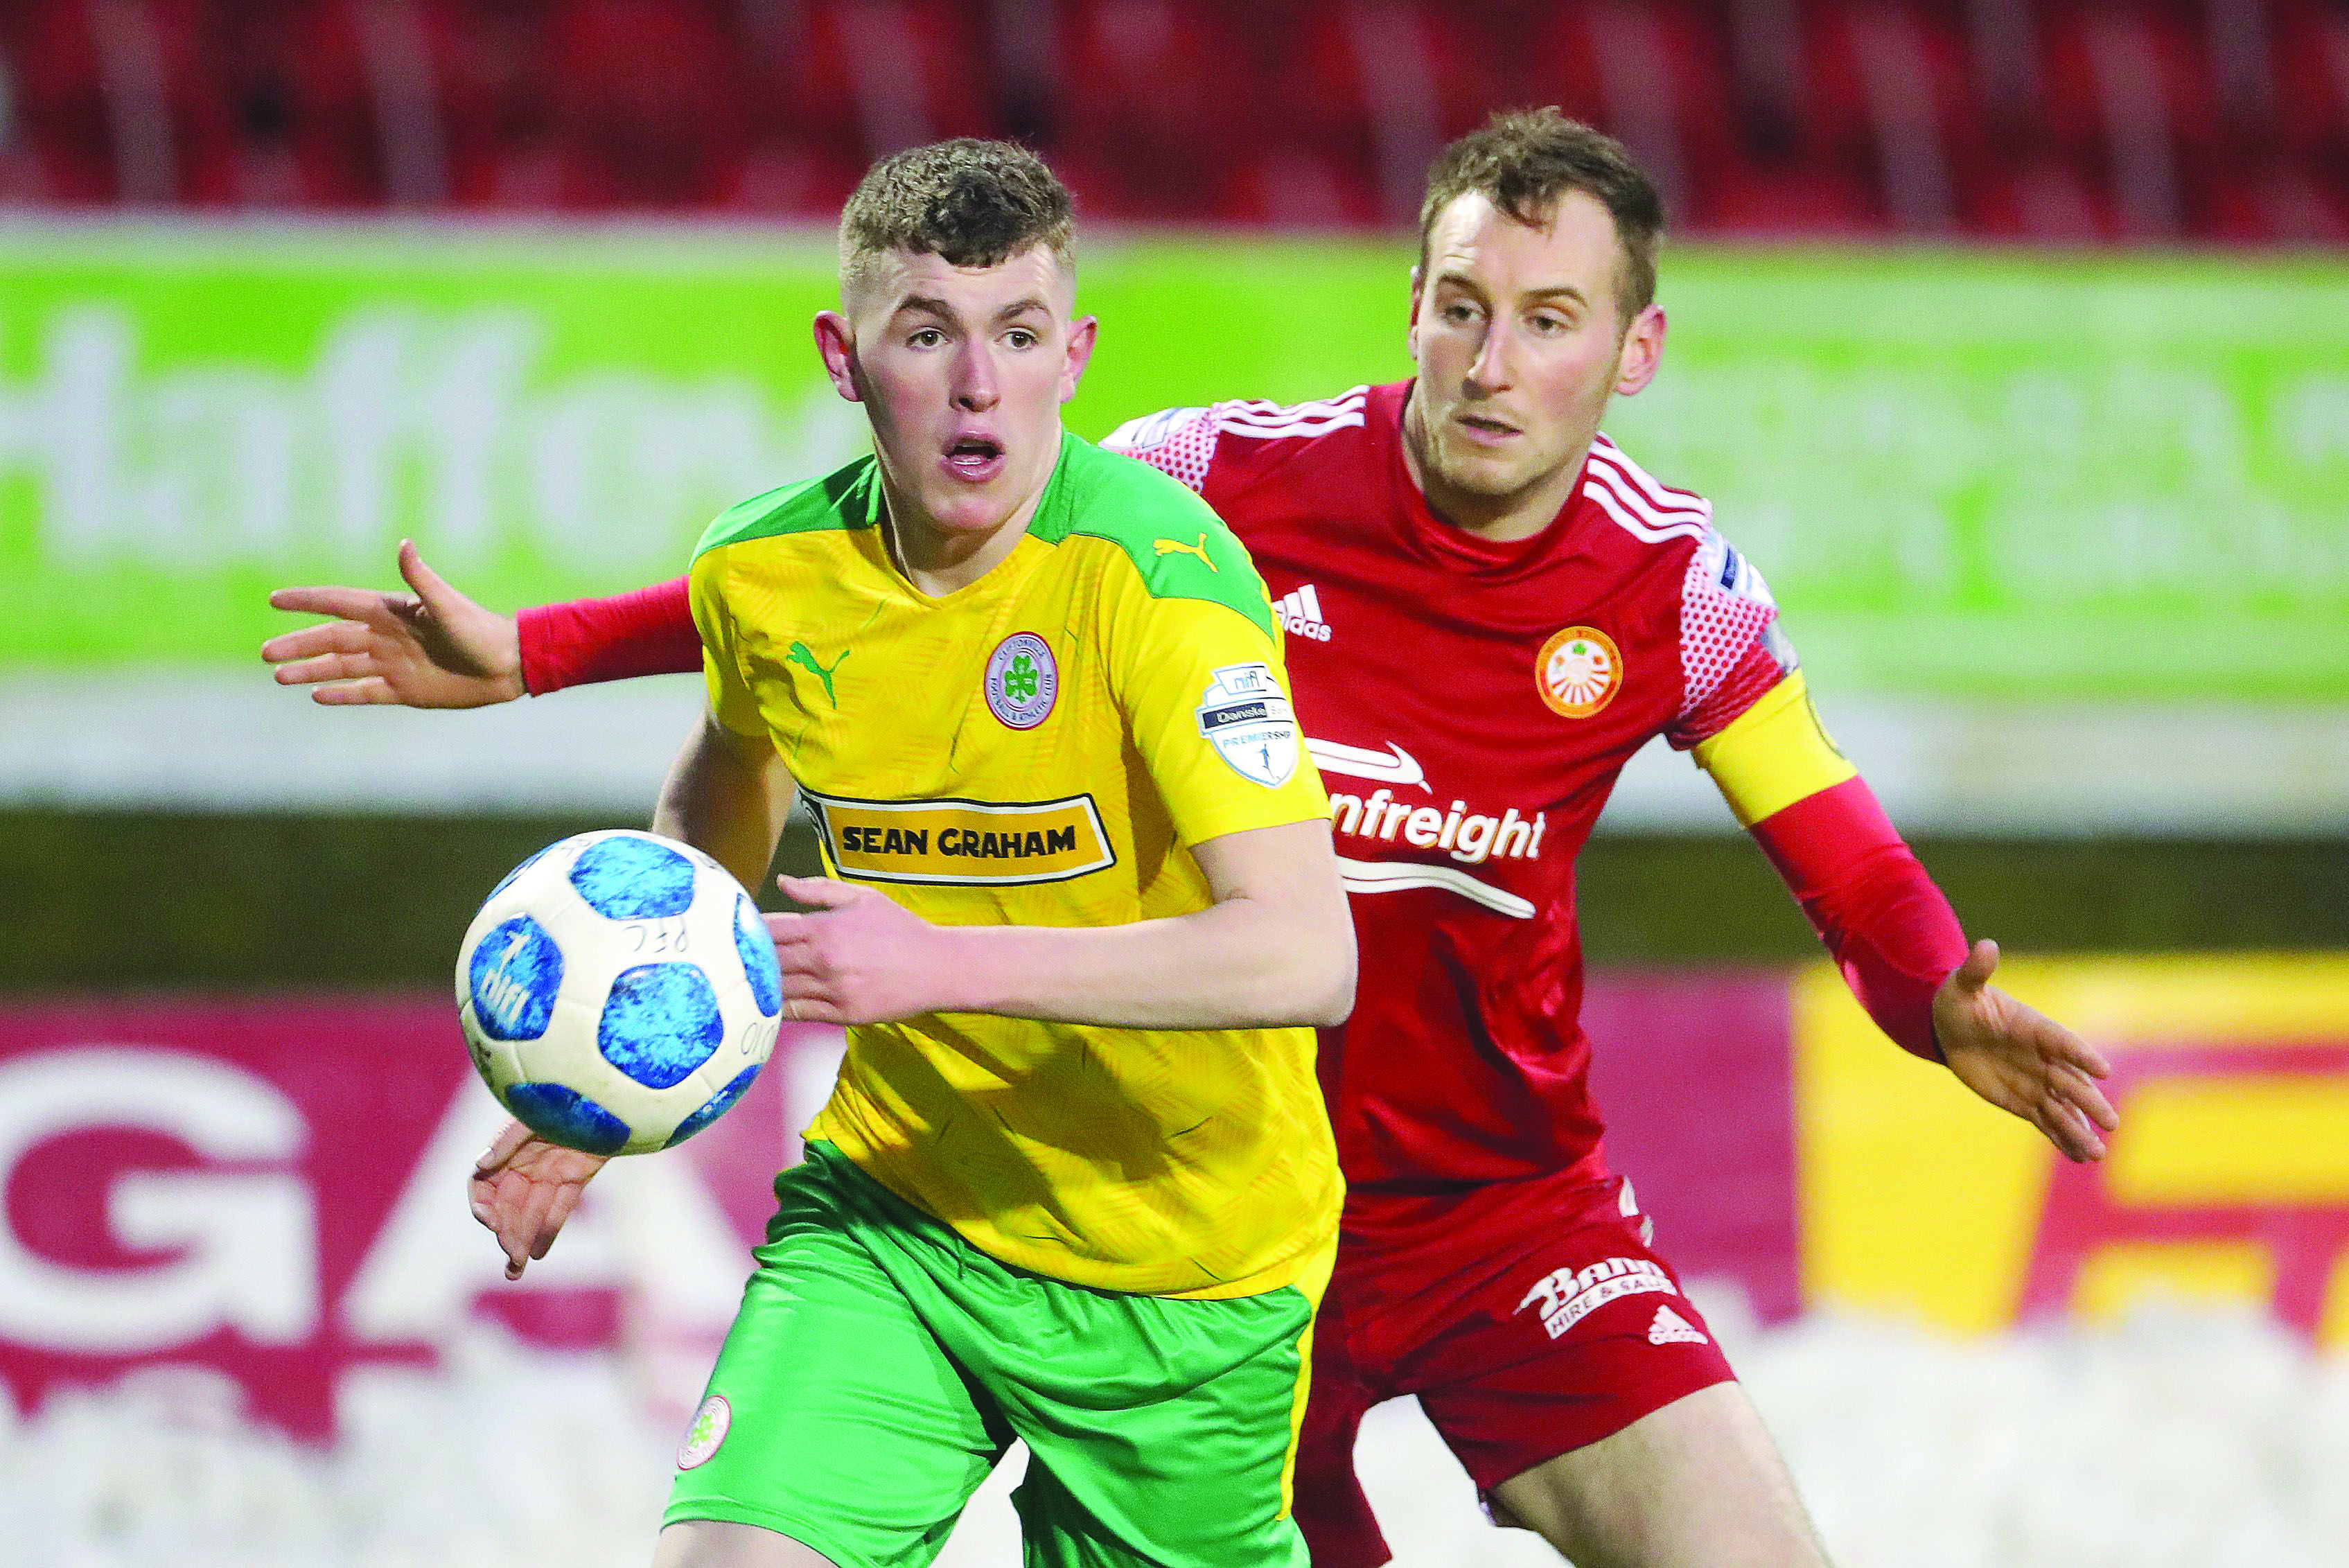 Cliftonville manager Paddy McLaughlin was disappointed his side dropped points late-on against Portadown on Saturday